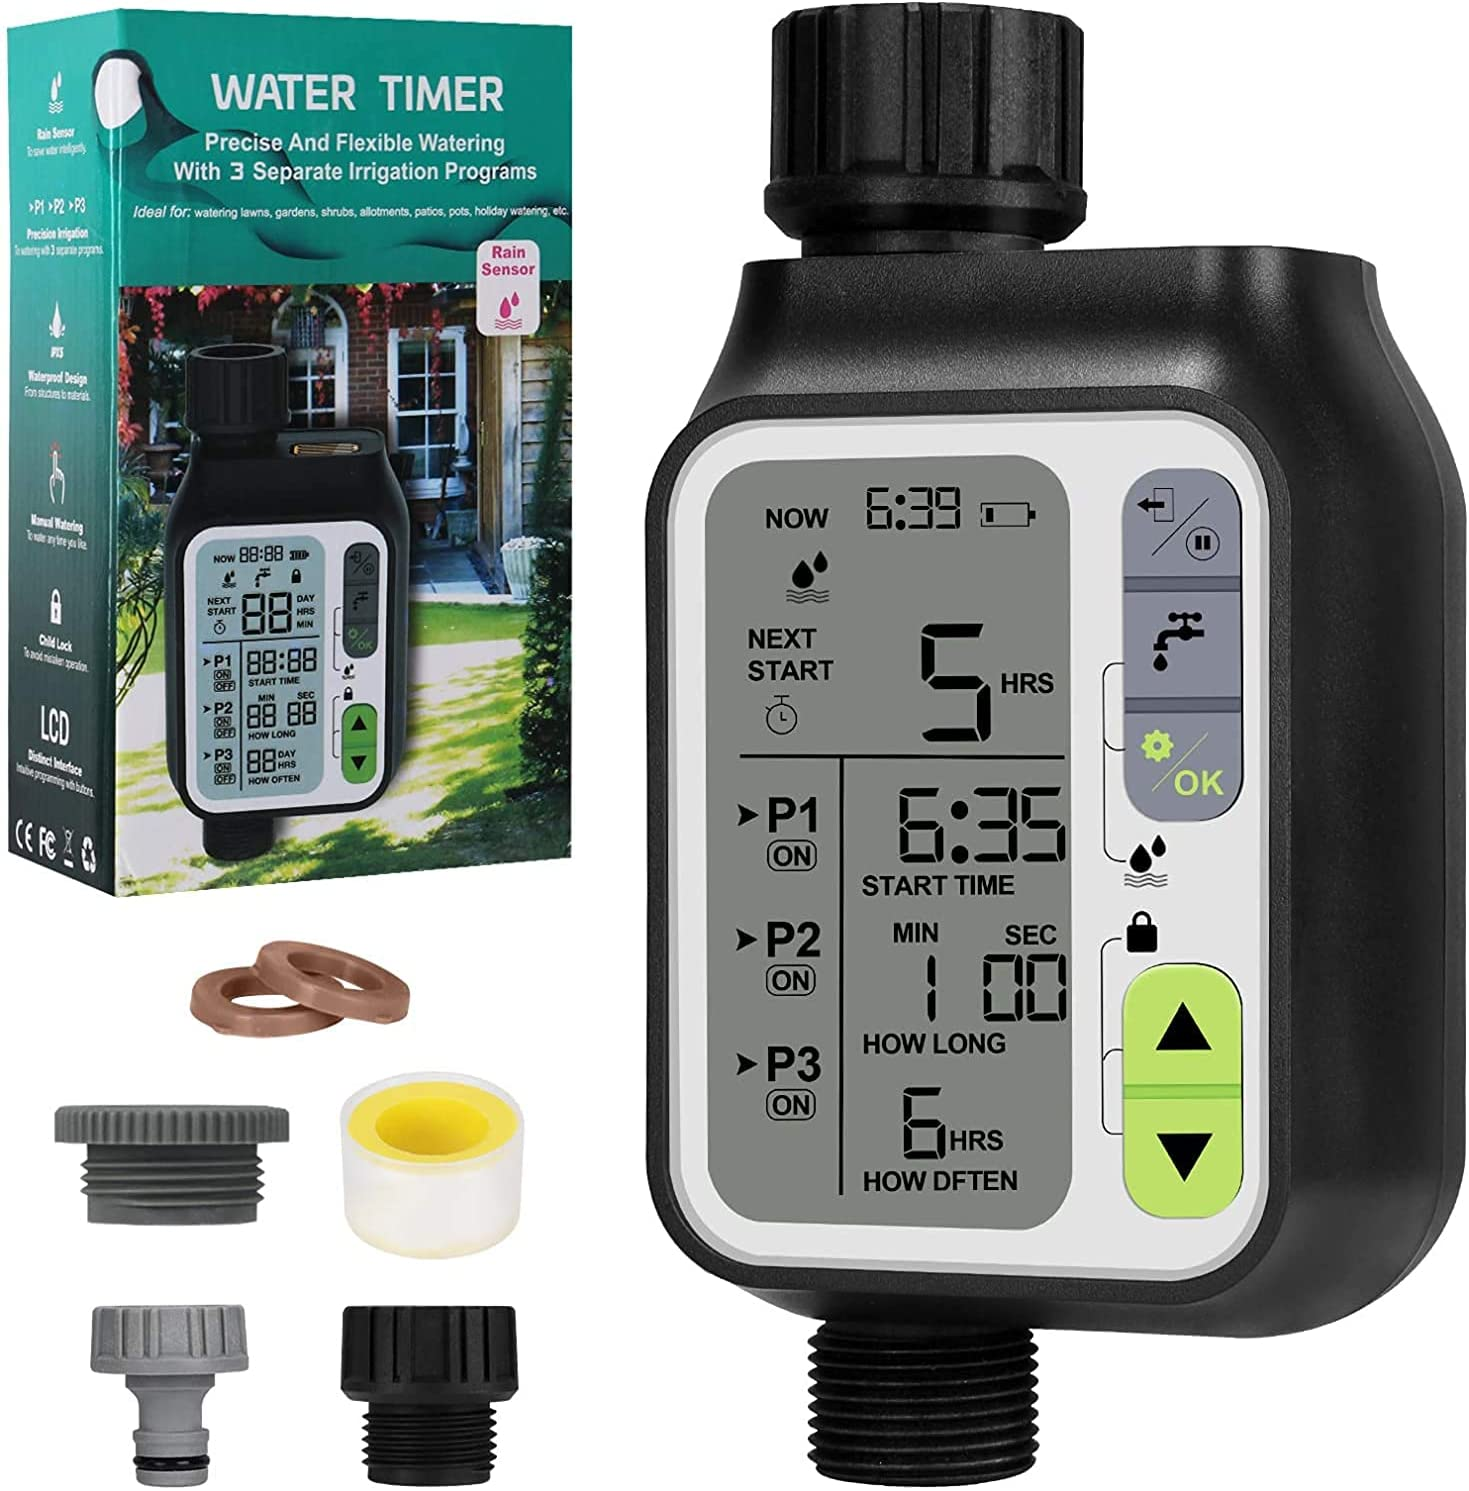 Bearbro Automatic Water Timer,3 Separate Irrigation Digital Programmable,Sprinkler Timer with Rain Sensor/Child Lock/Auto & Manual Watering Mode/IP65 Waterproof,Garden Lawn Hose Faucet Water Timer